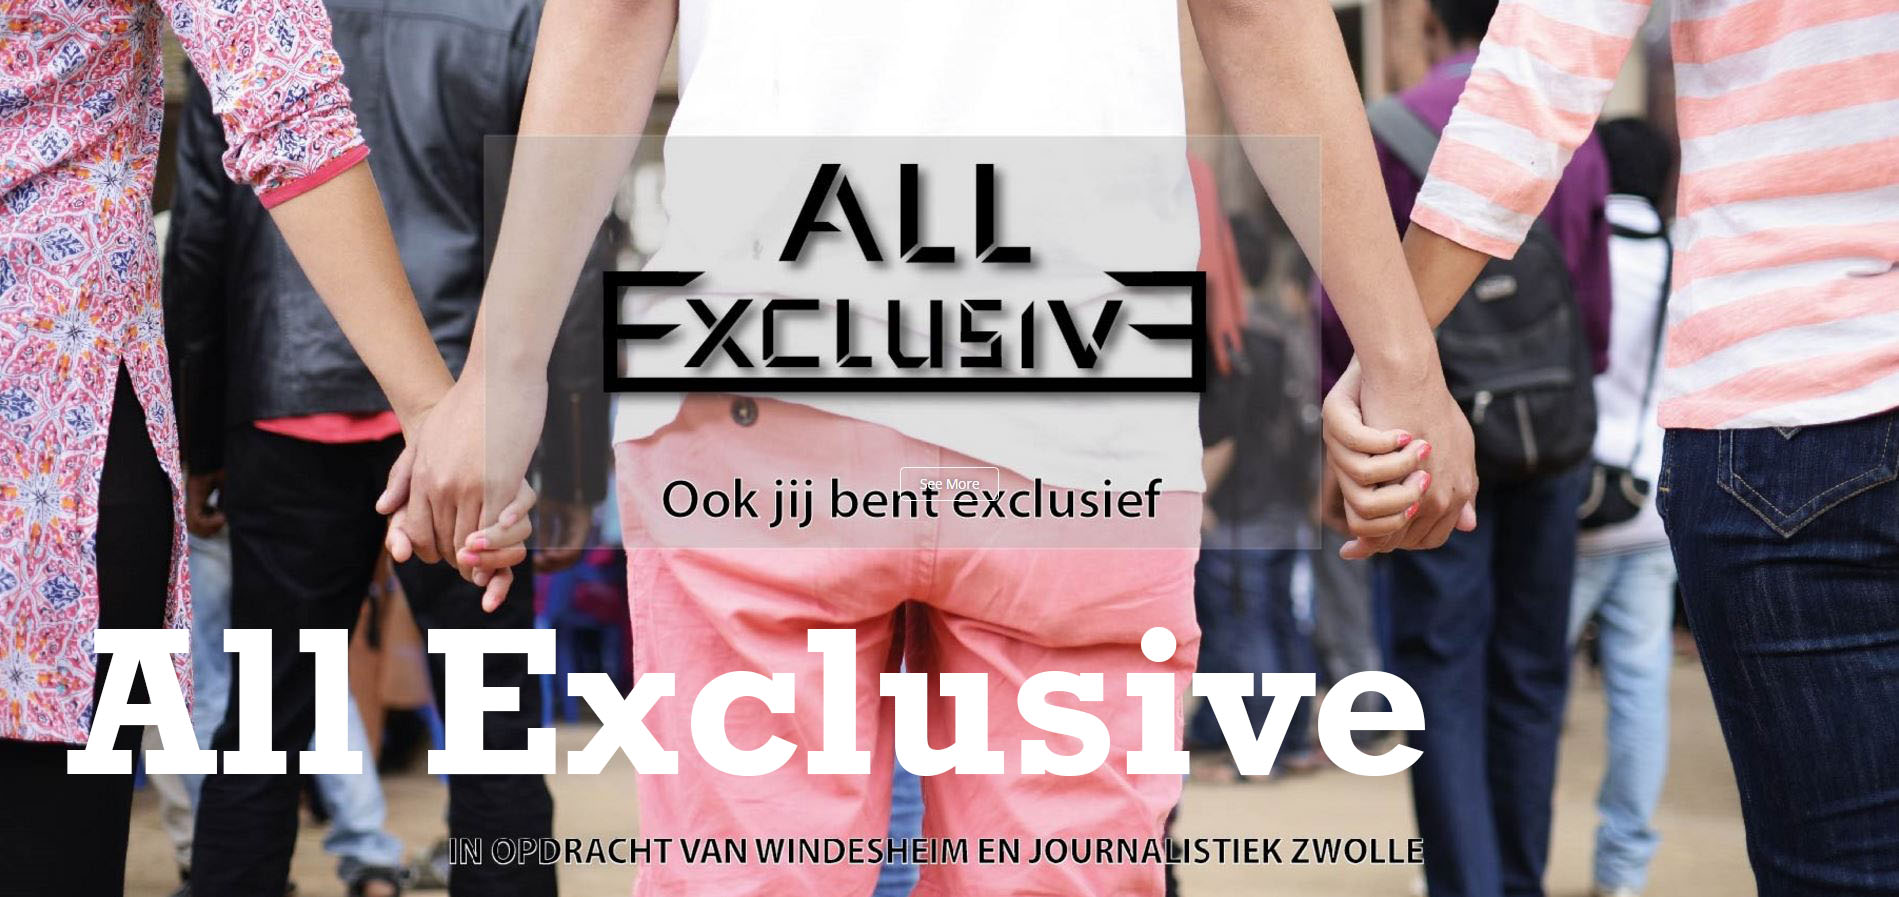 all-exclusive-nieuw1